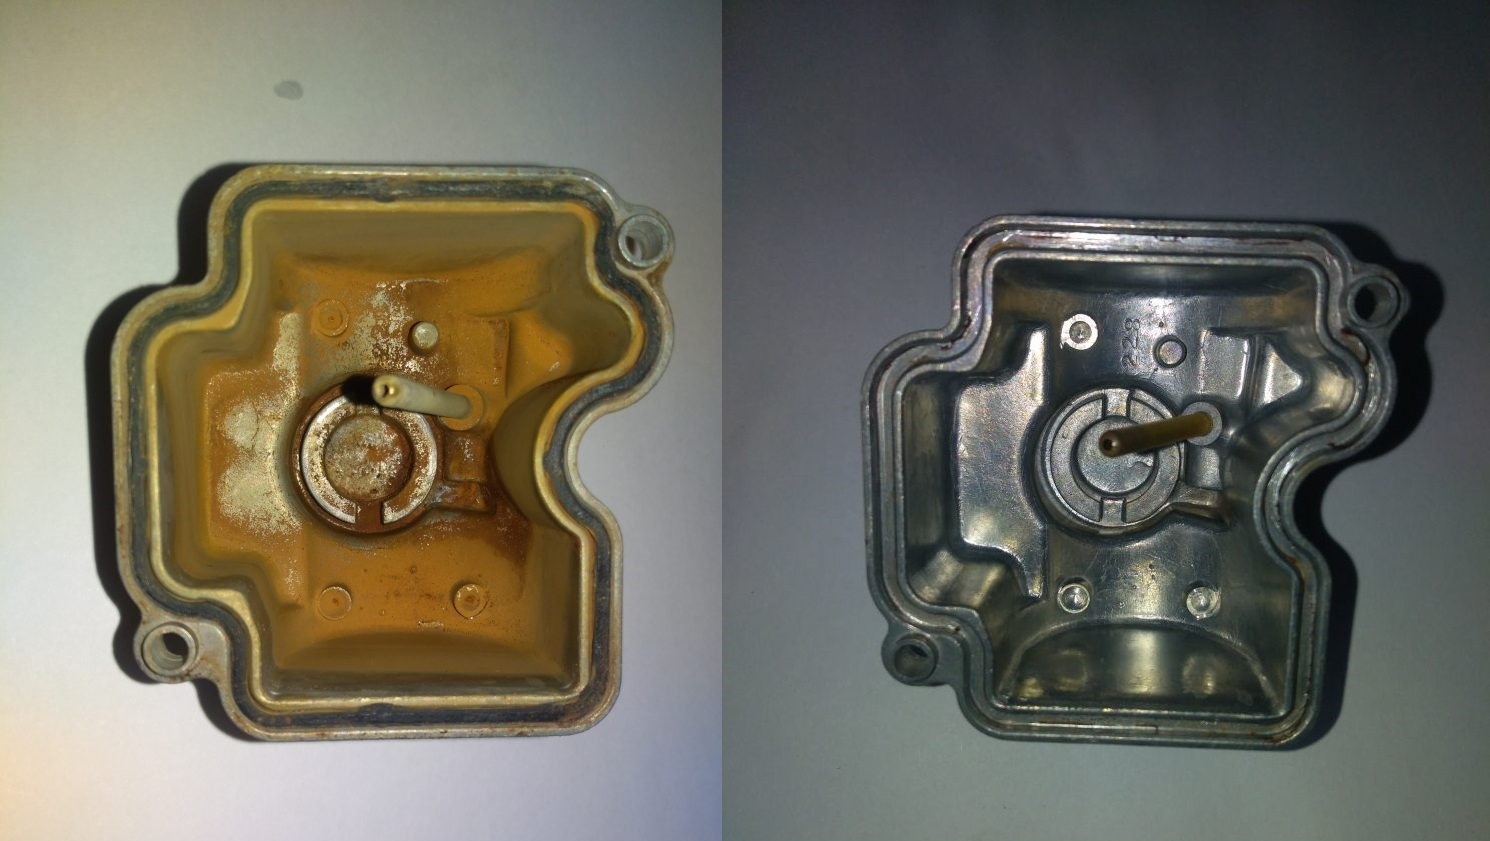 http://www.motoravonturist.nl/wp-content/uploads/2018/03/xl350_carburetor_before_ultrasonic_cleaning-768x1024-1.jpg